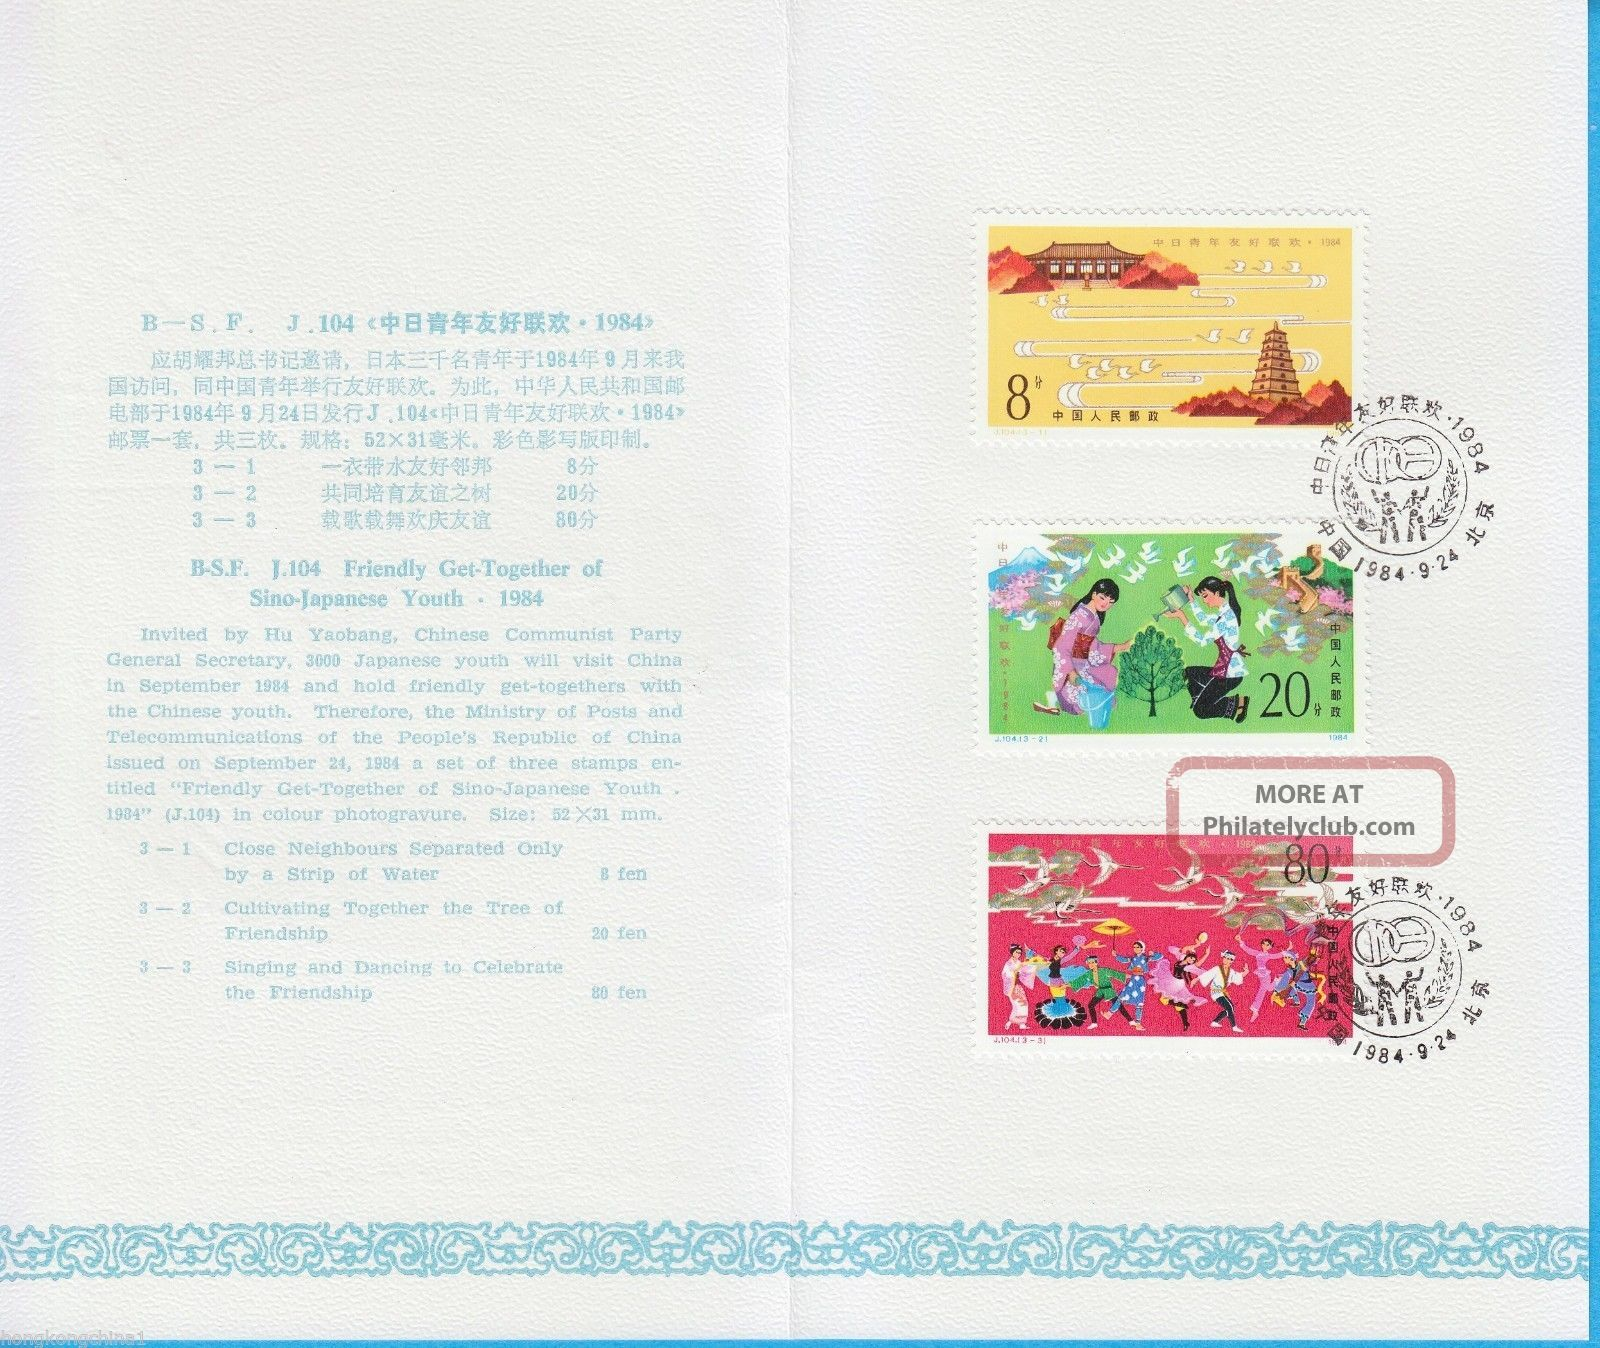 China Stamp Fdc 1984 J104 Friendly Get - Together Of Sino - Japanese Youth Cn134685 Asia photo